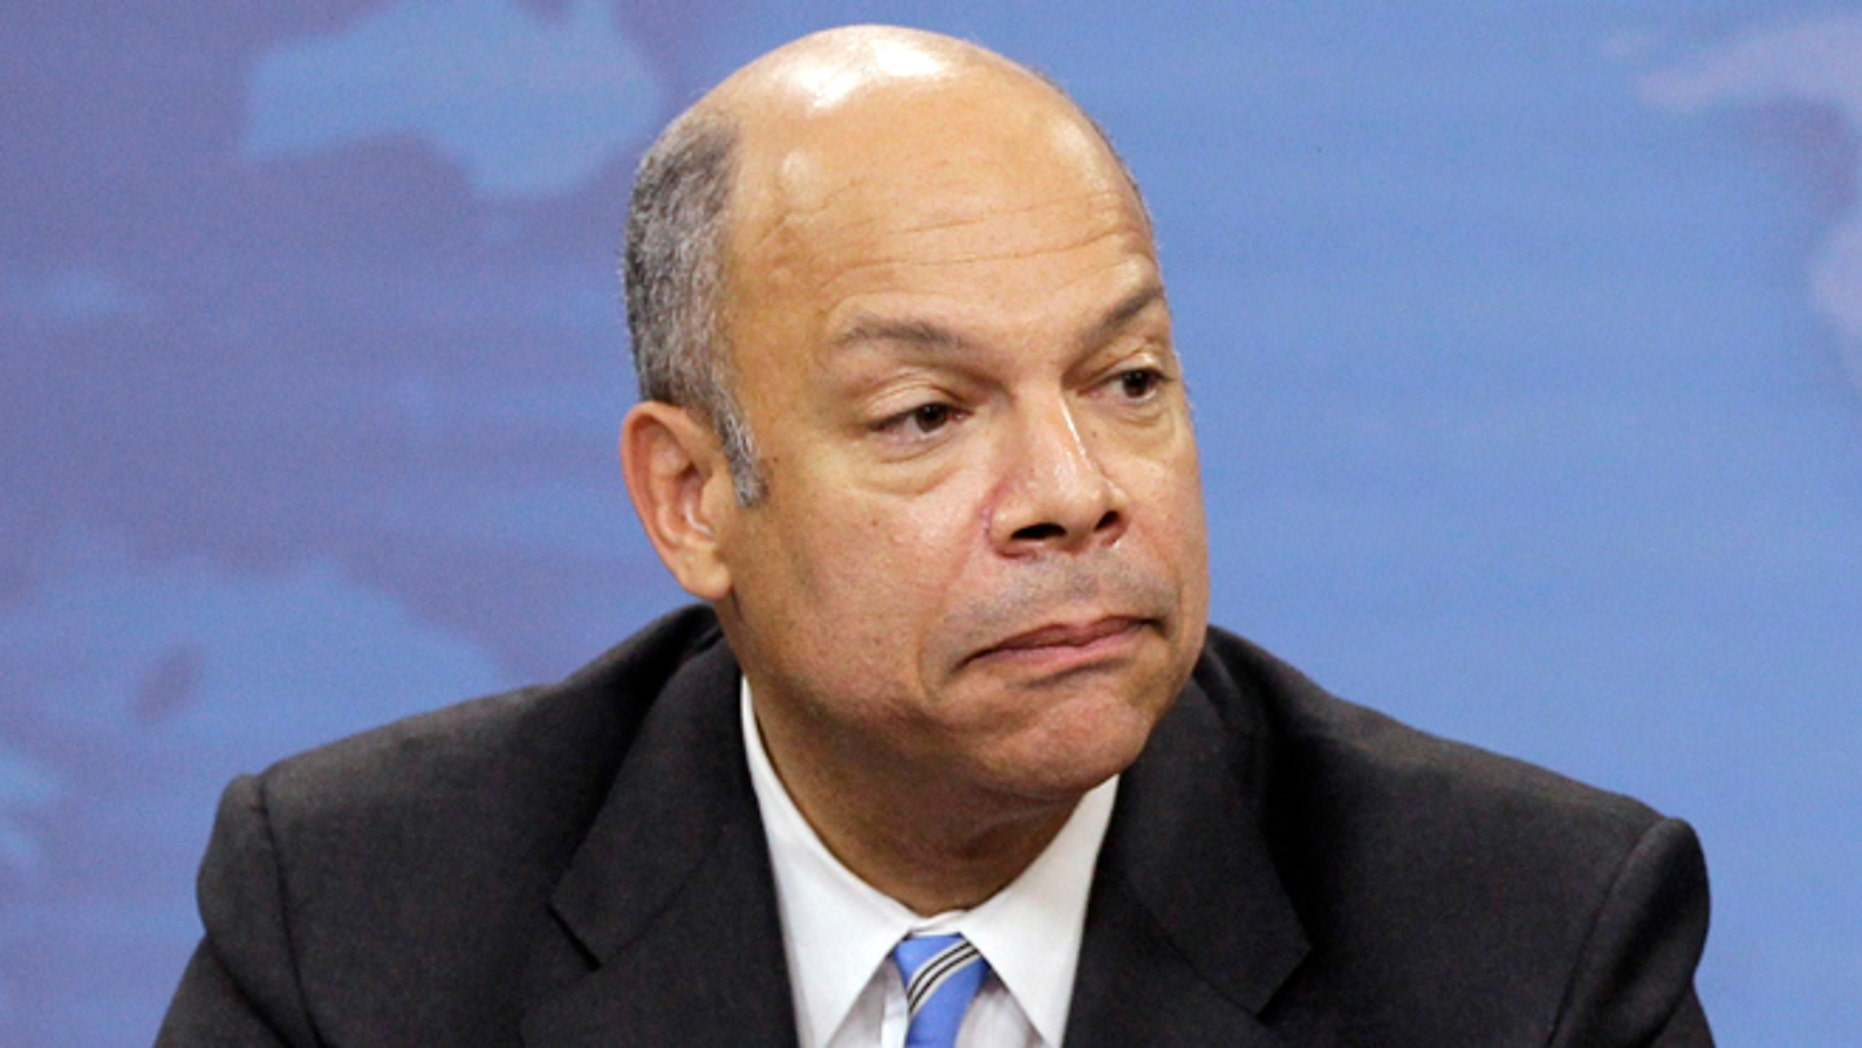 FILE: Nov. 30, 2010: Jeh Johnson speaks during a news conference at the Pentagon in Washington, D.C.